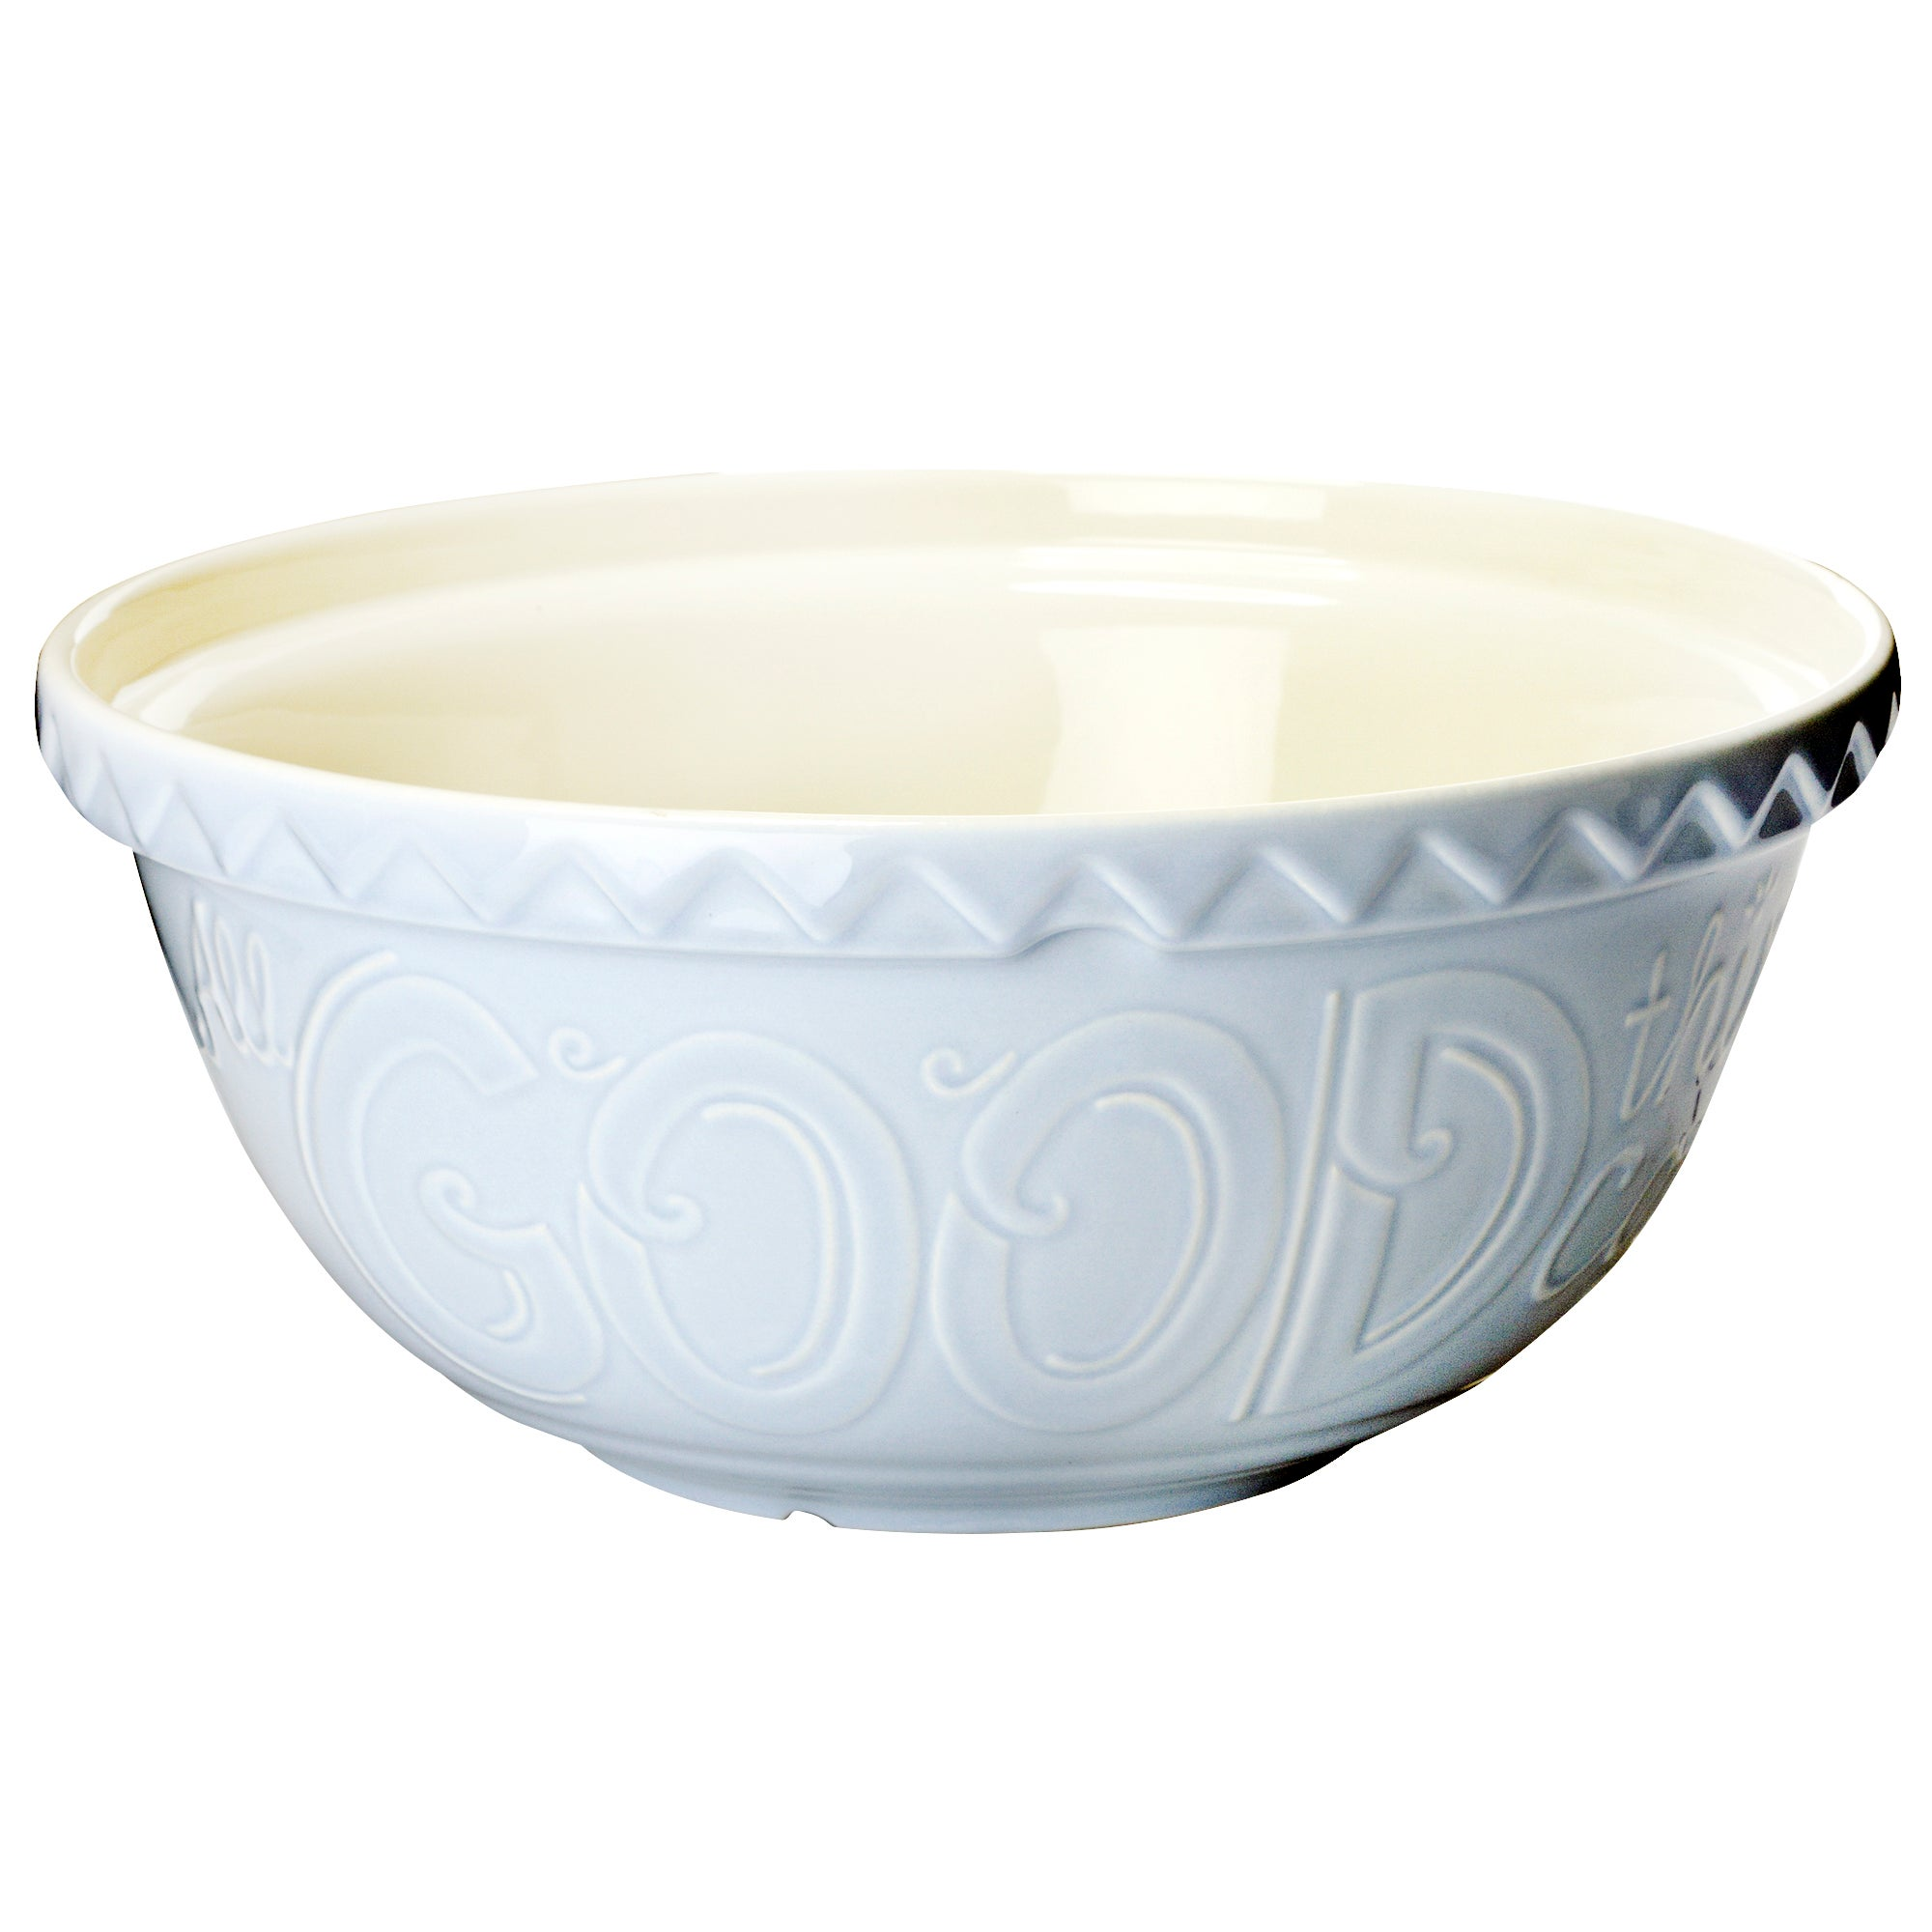 Mason Cash Good Things Mixing Bowl